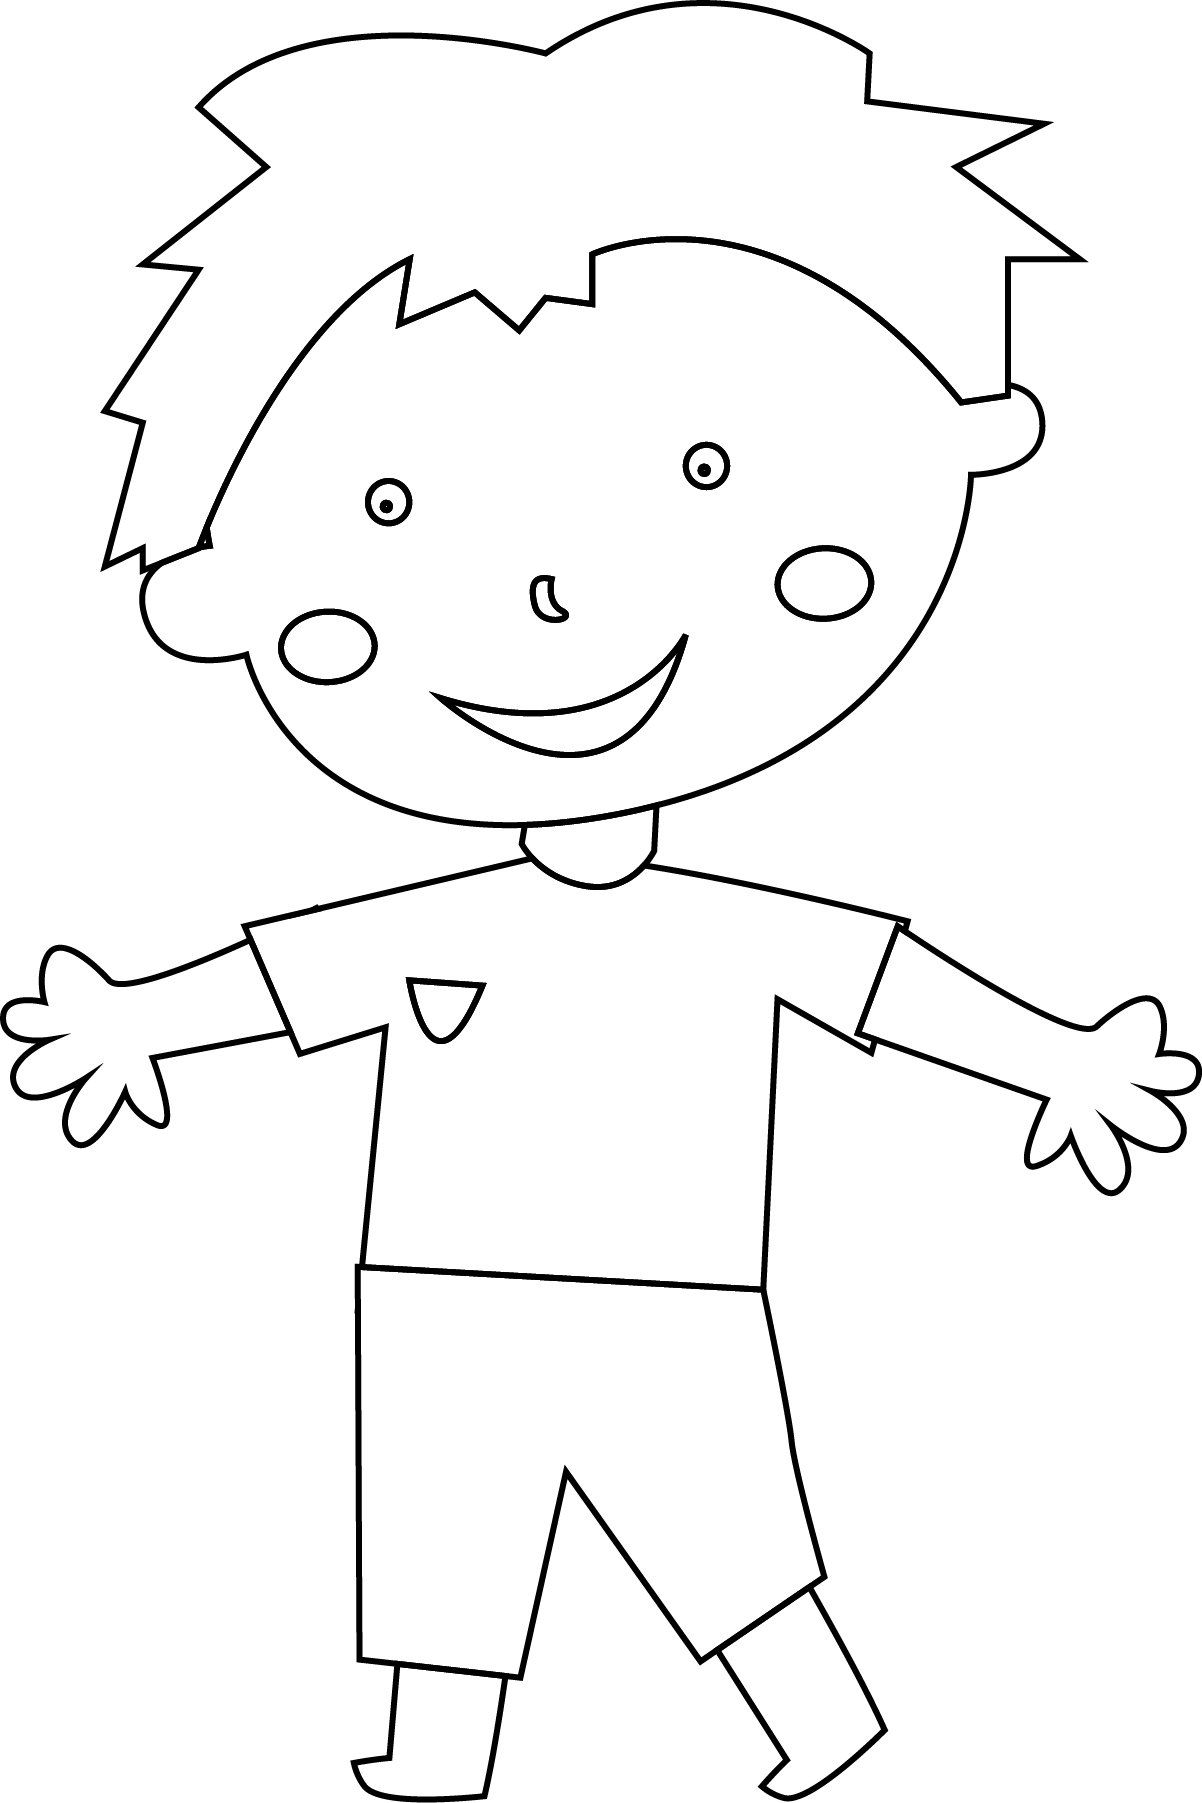 Hello Child Boy Coloring Page